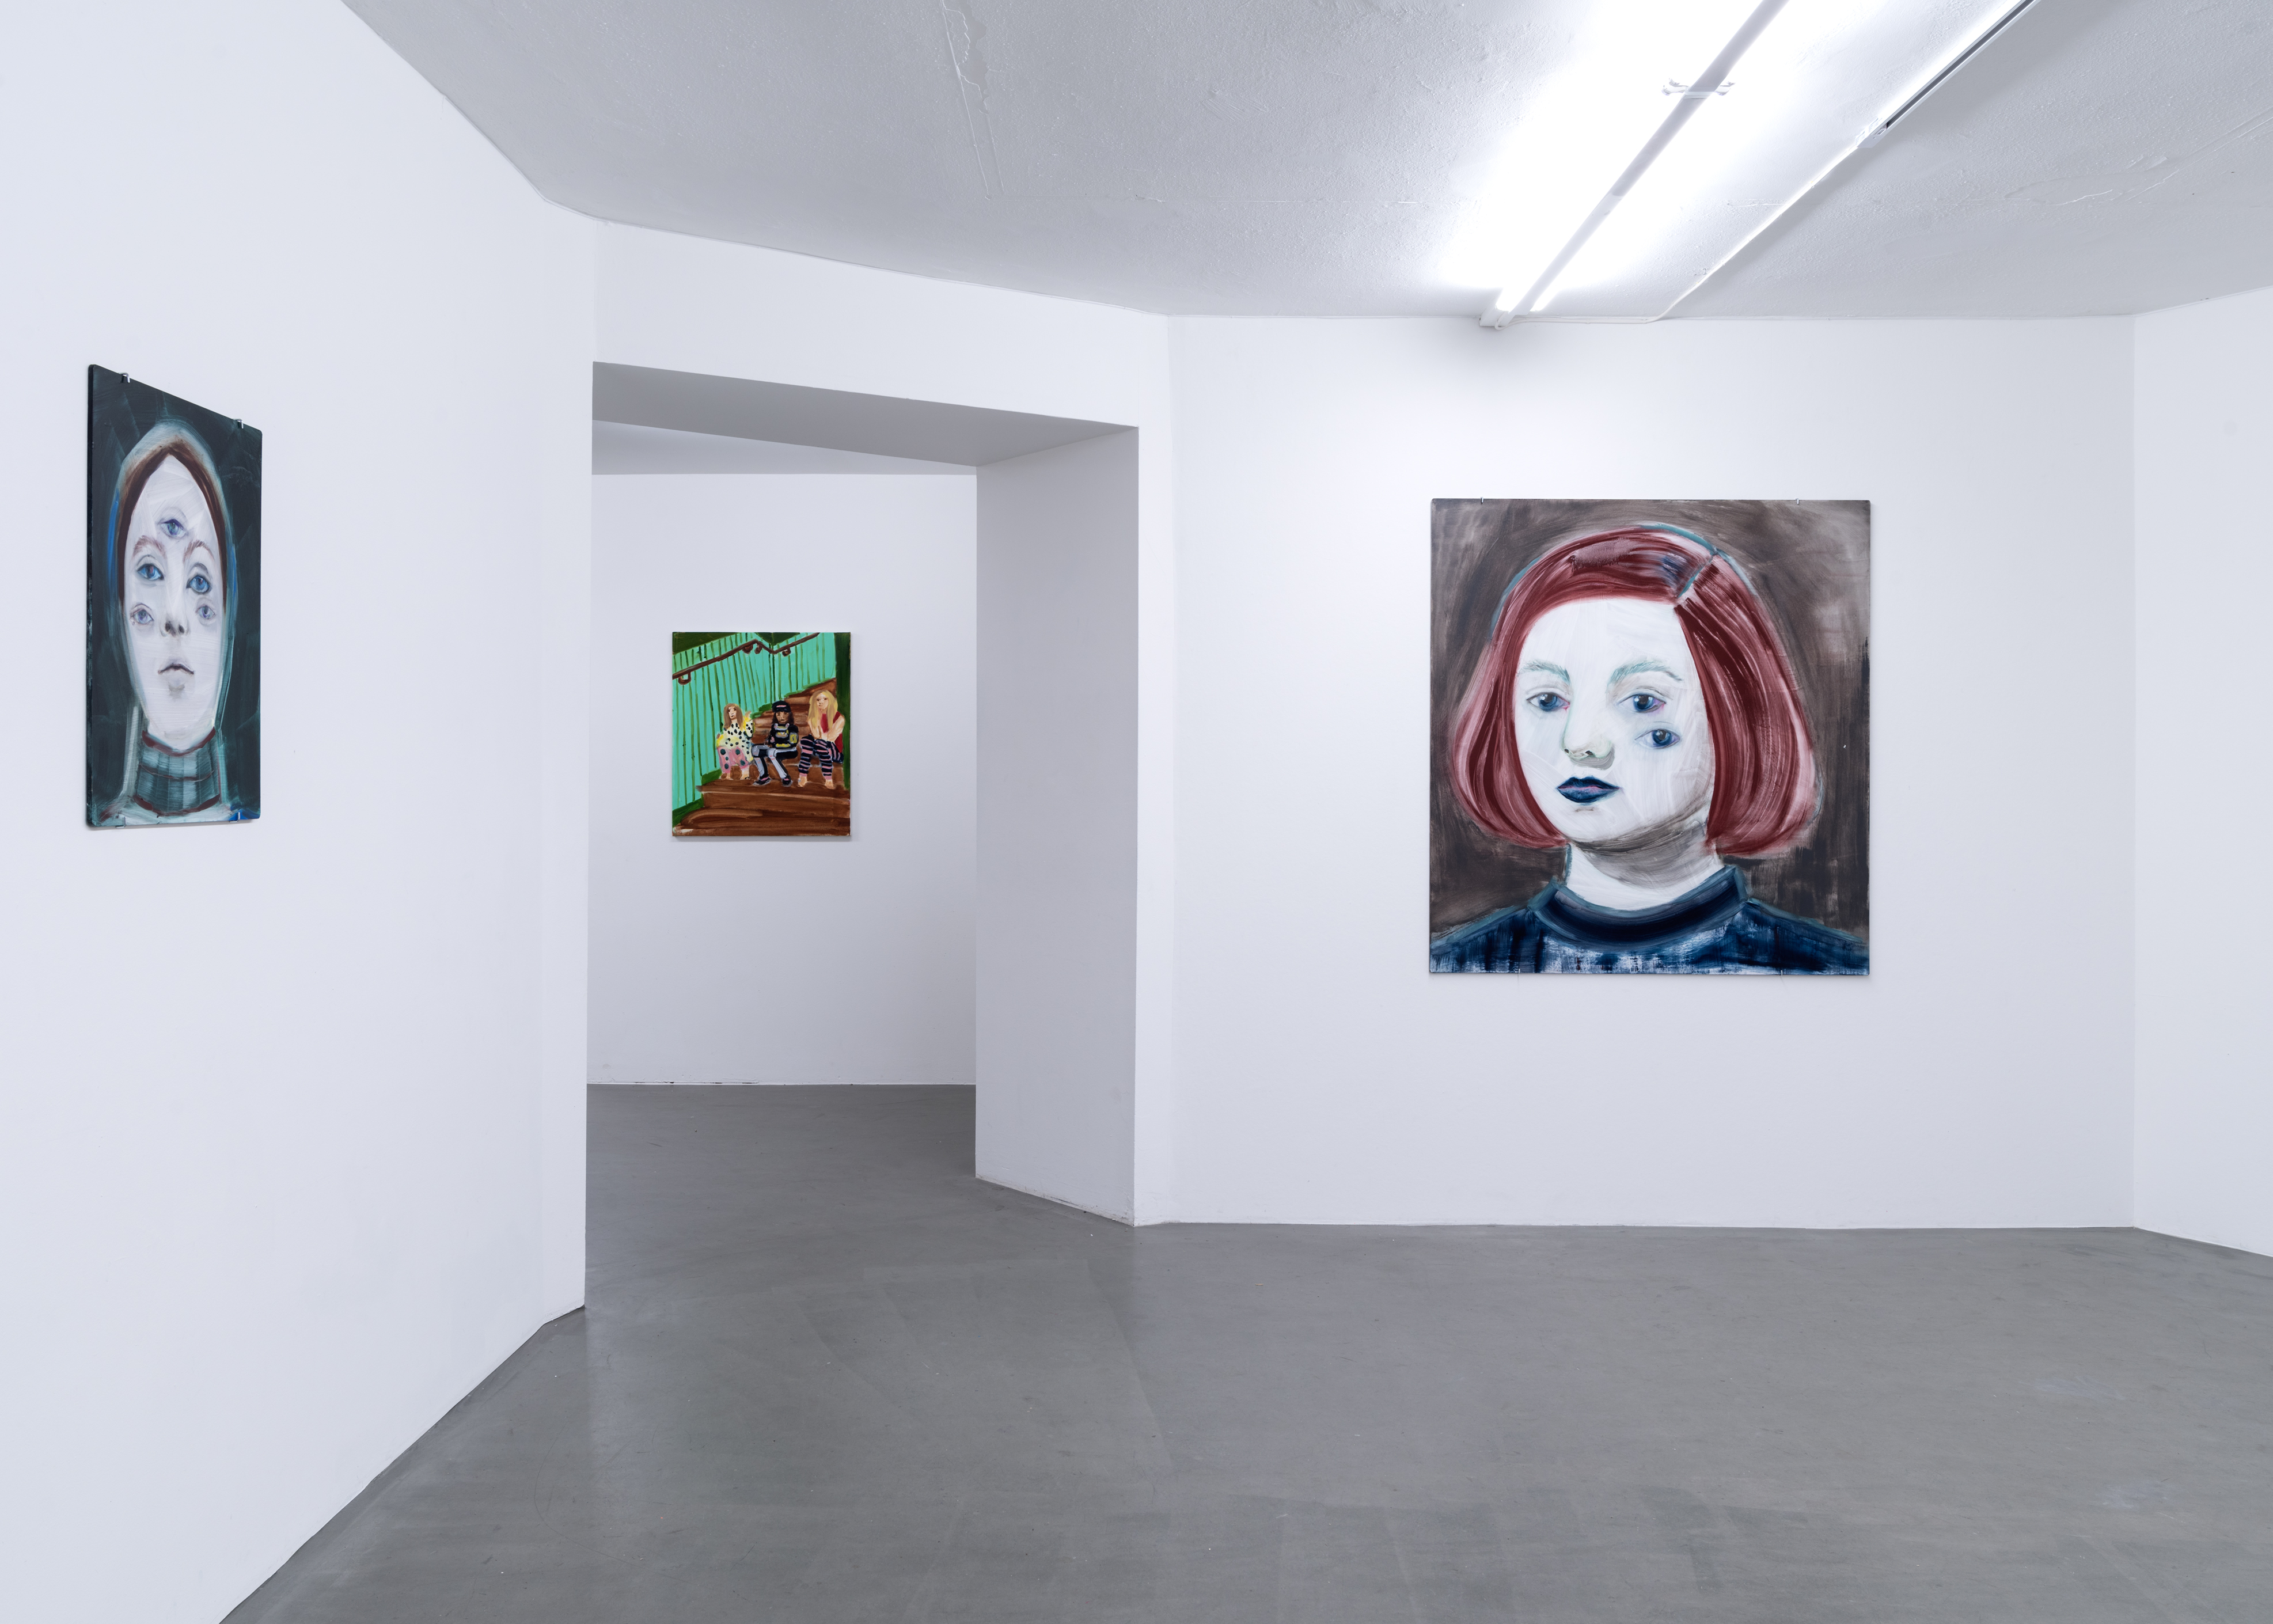 Hannalena Heiska, Installation view, In The Belly of Painting, at Galleri Thomassen, 2017